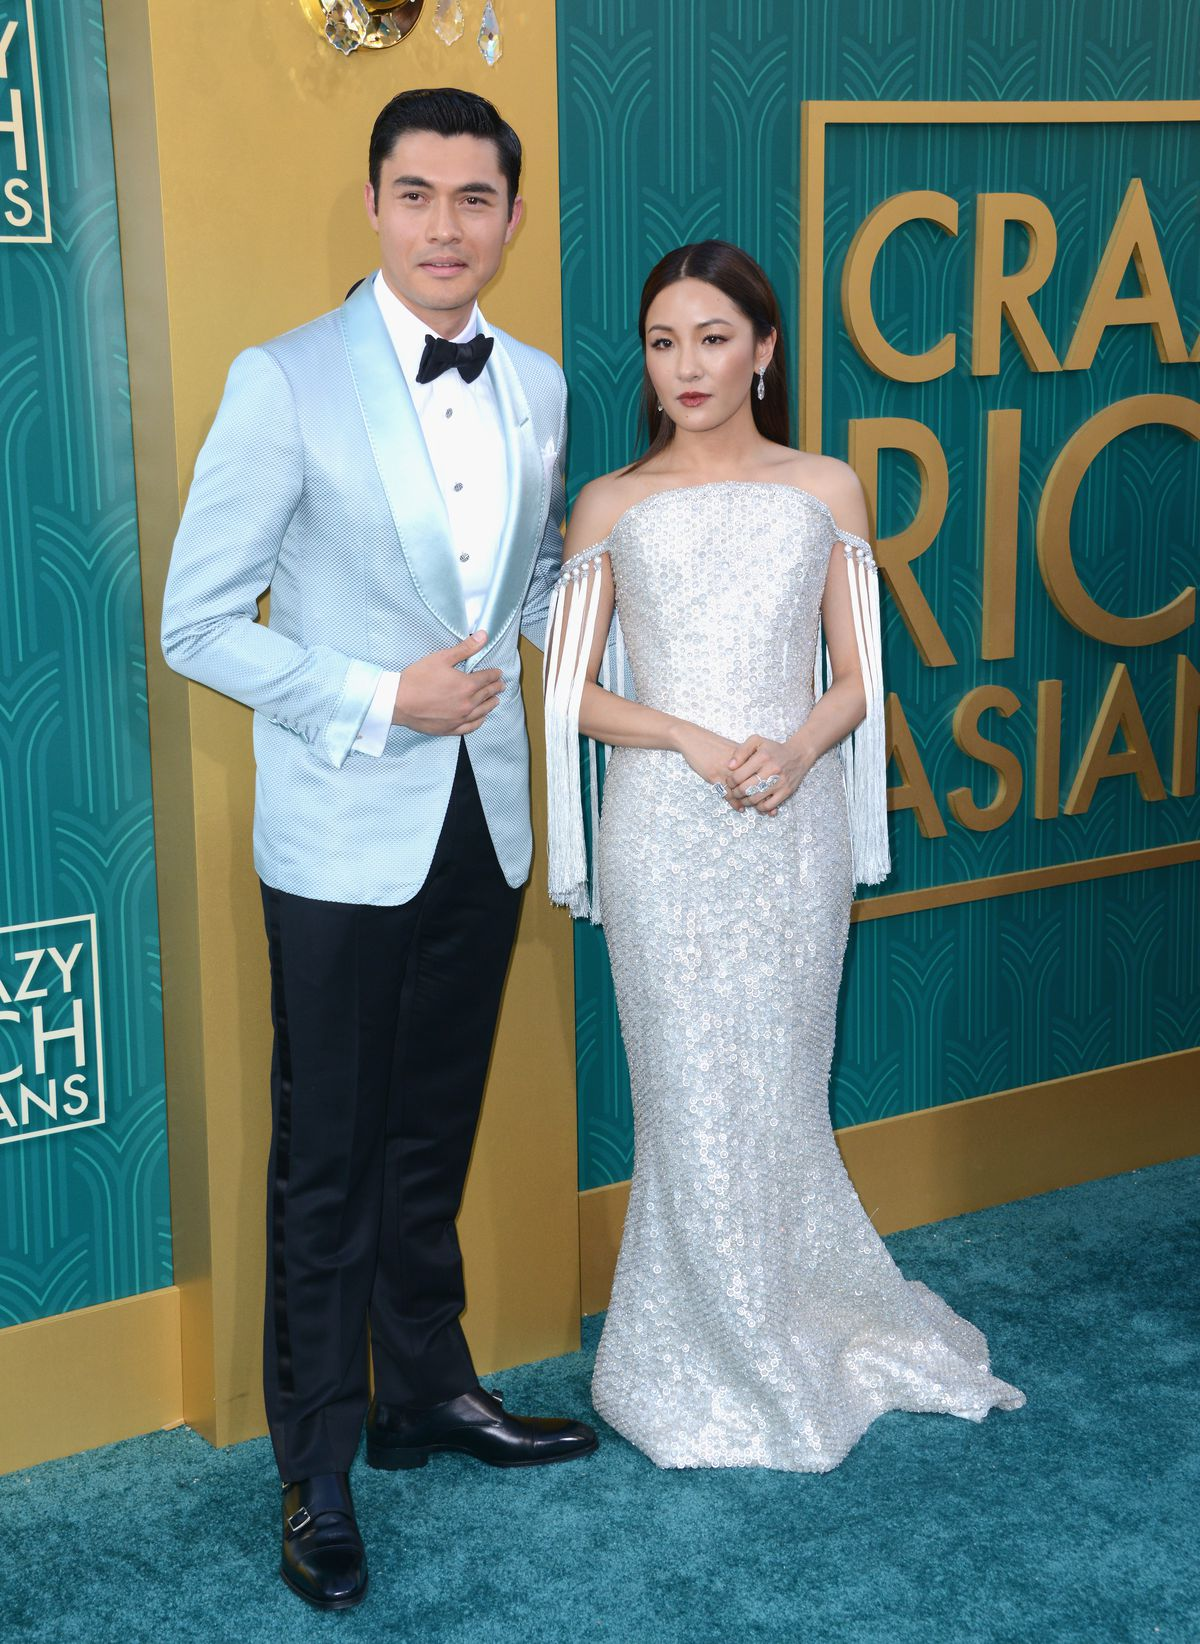 Crazy Rich Asians stars Henry Golding and Constance Wu at the film's Los Angeles premiere.